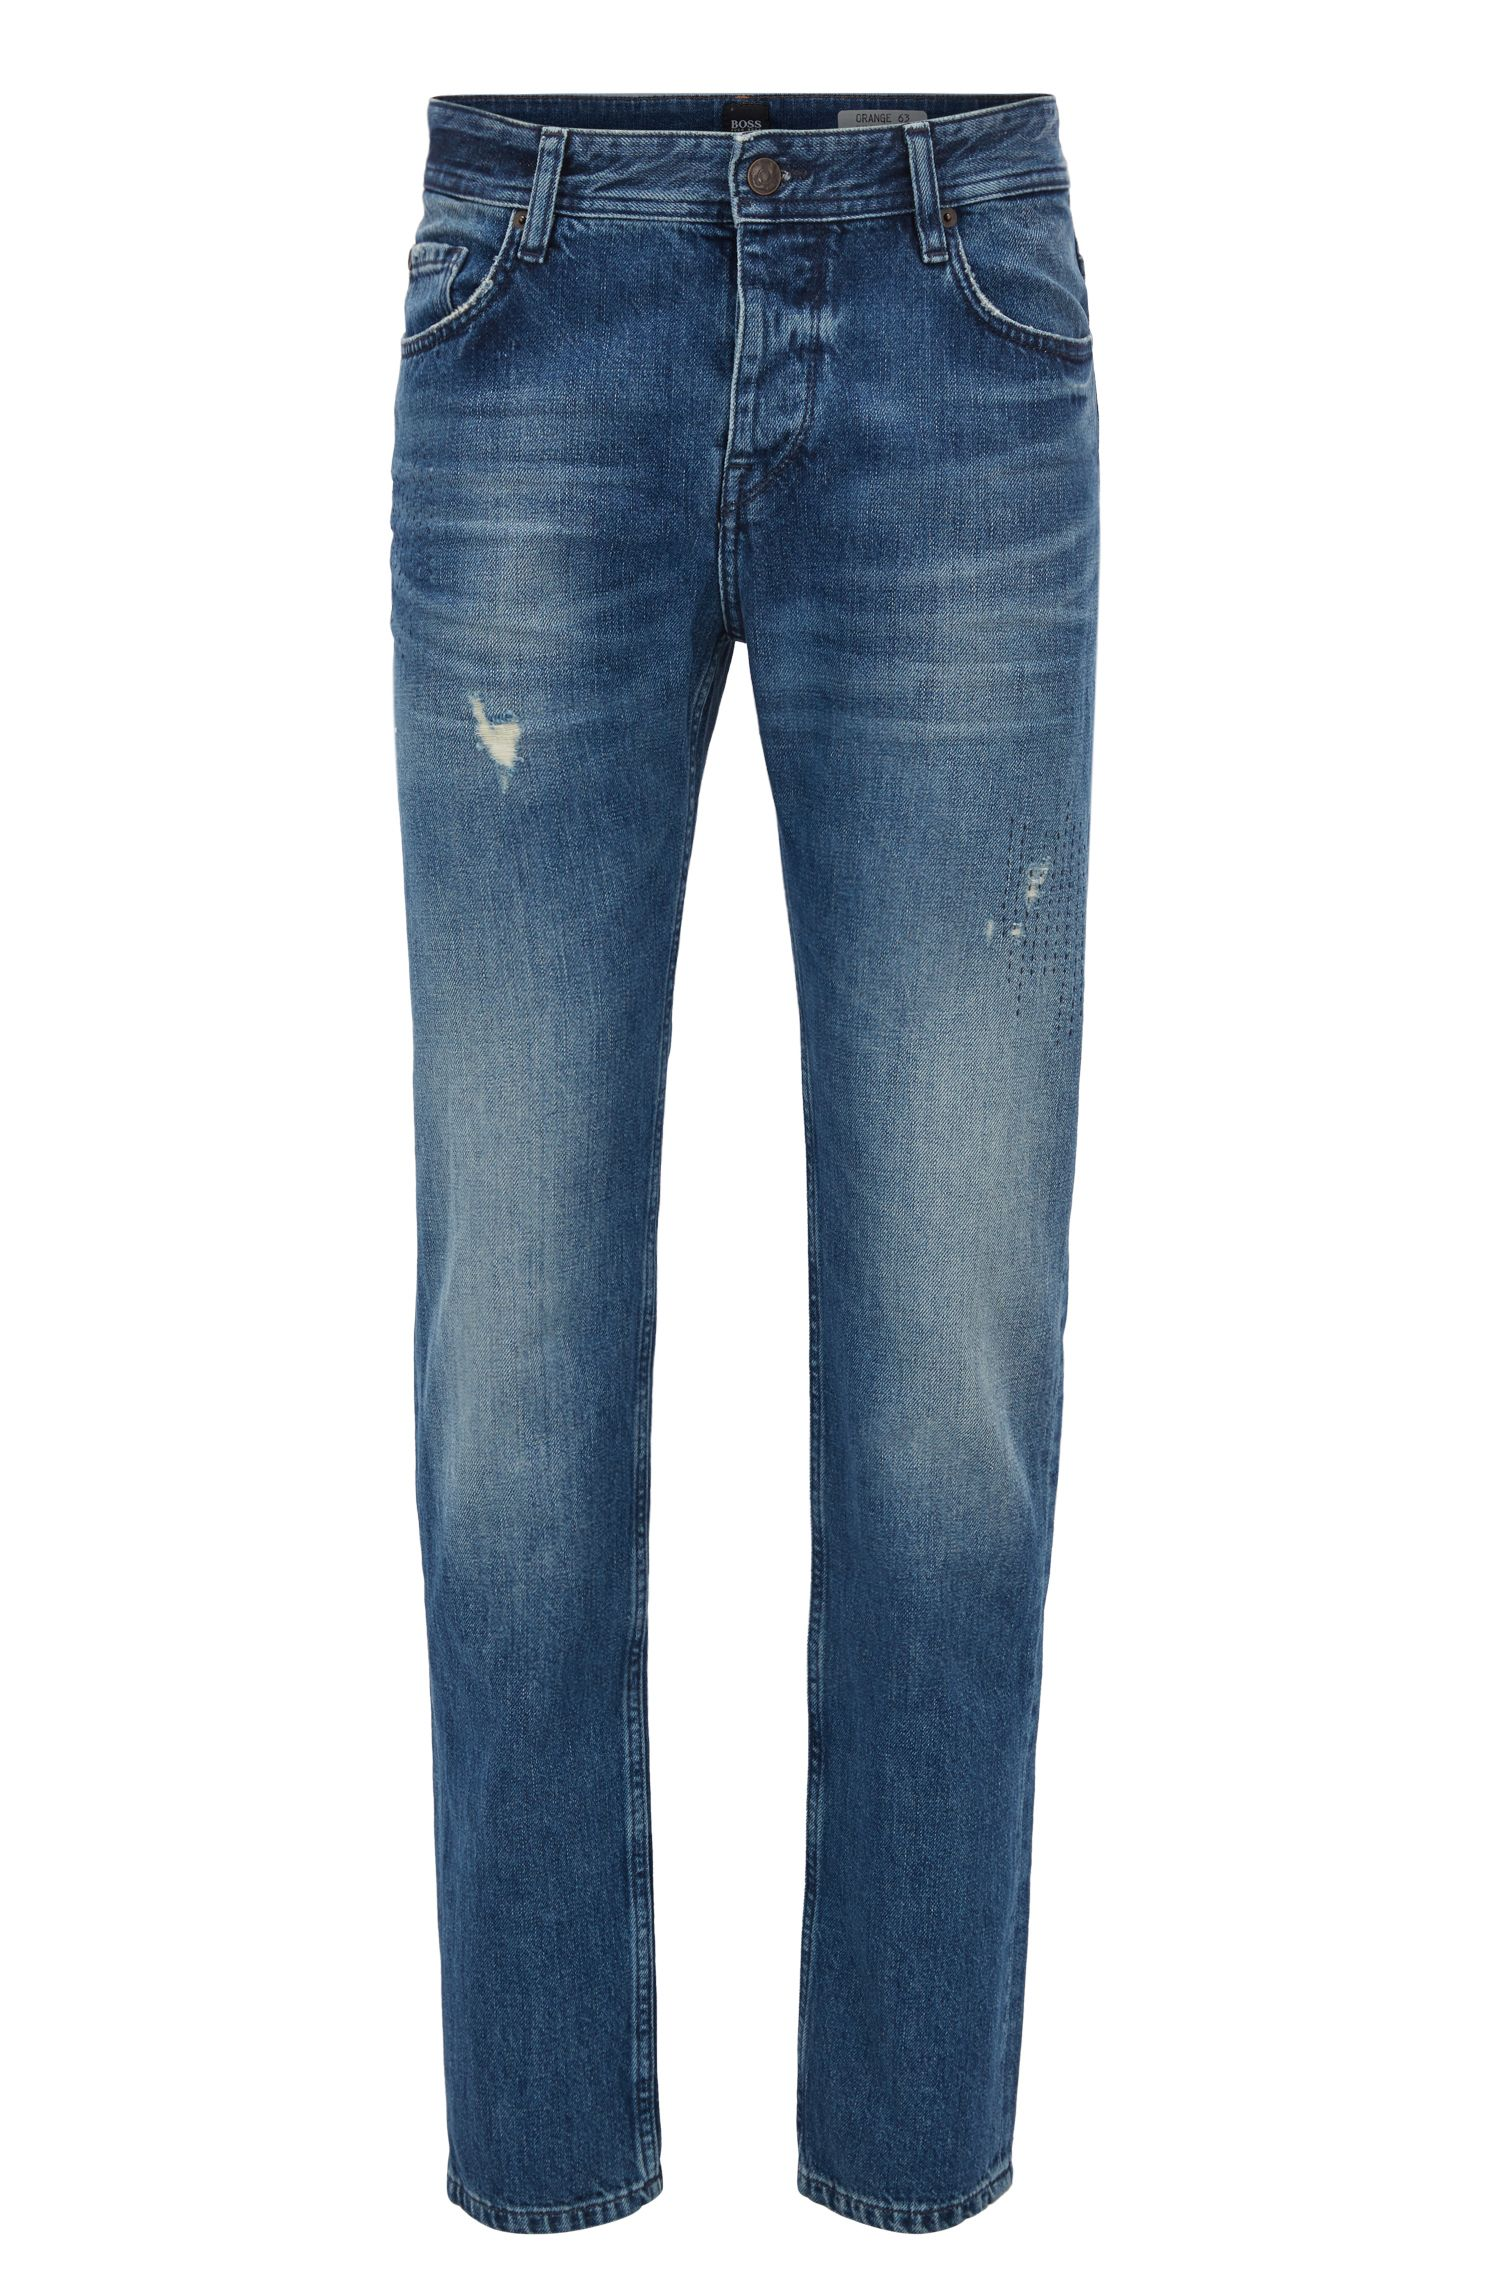 Tapered-fit jeans in dark-blue distressed denim